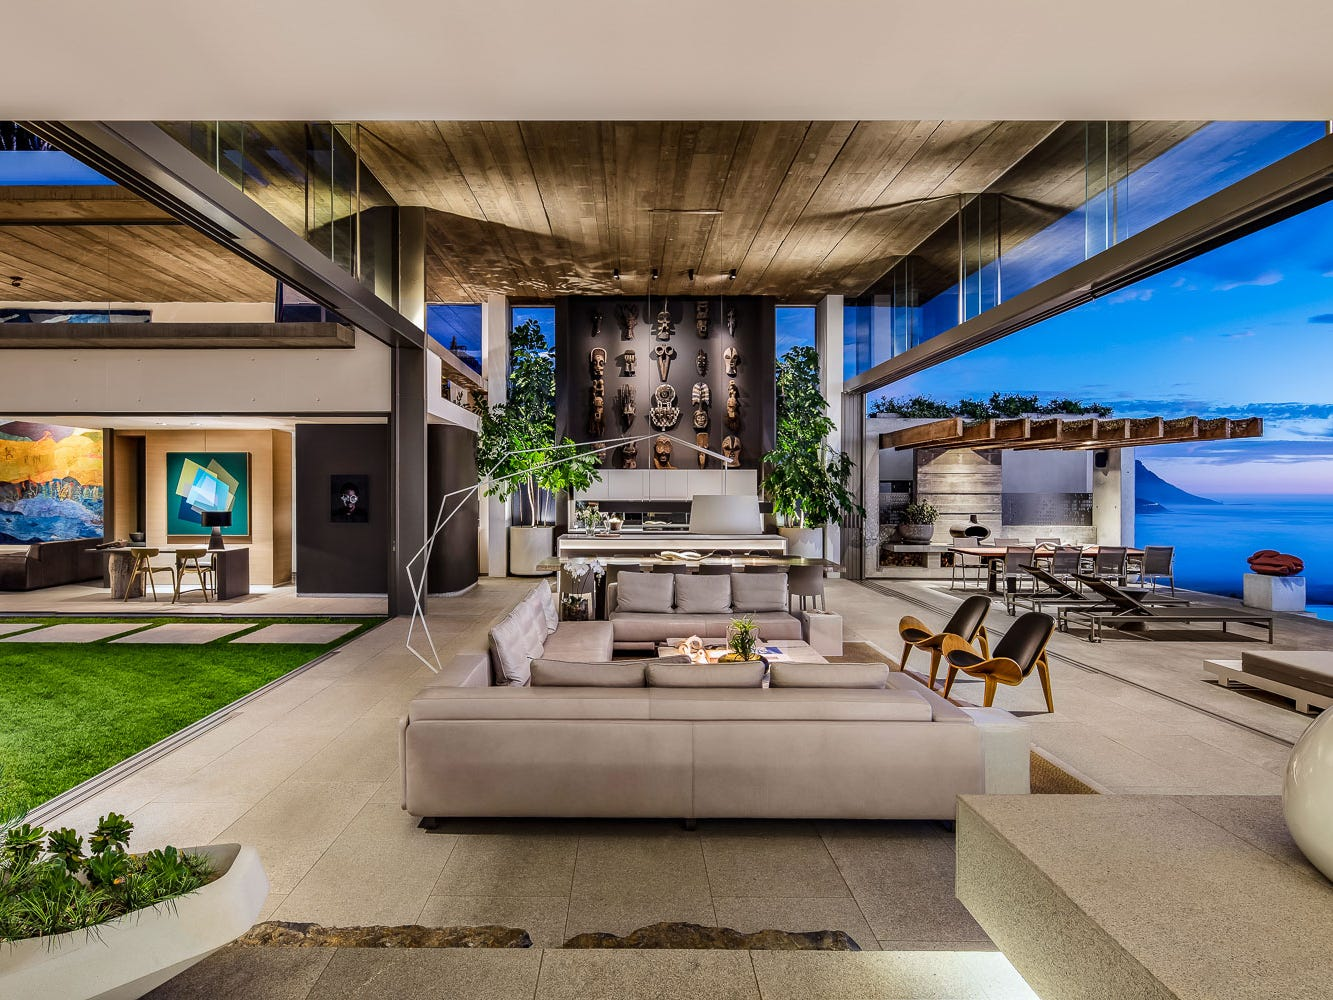 For more information: https://www.luxuryretreats.com/vacation-rentals/south-africa/cape-town/clifton/beyond-120942